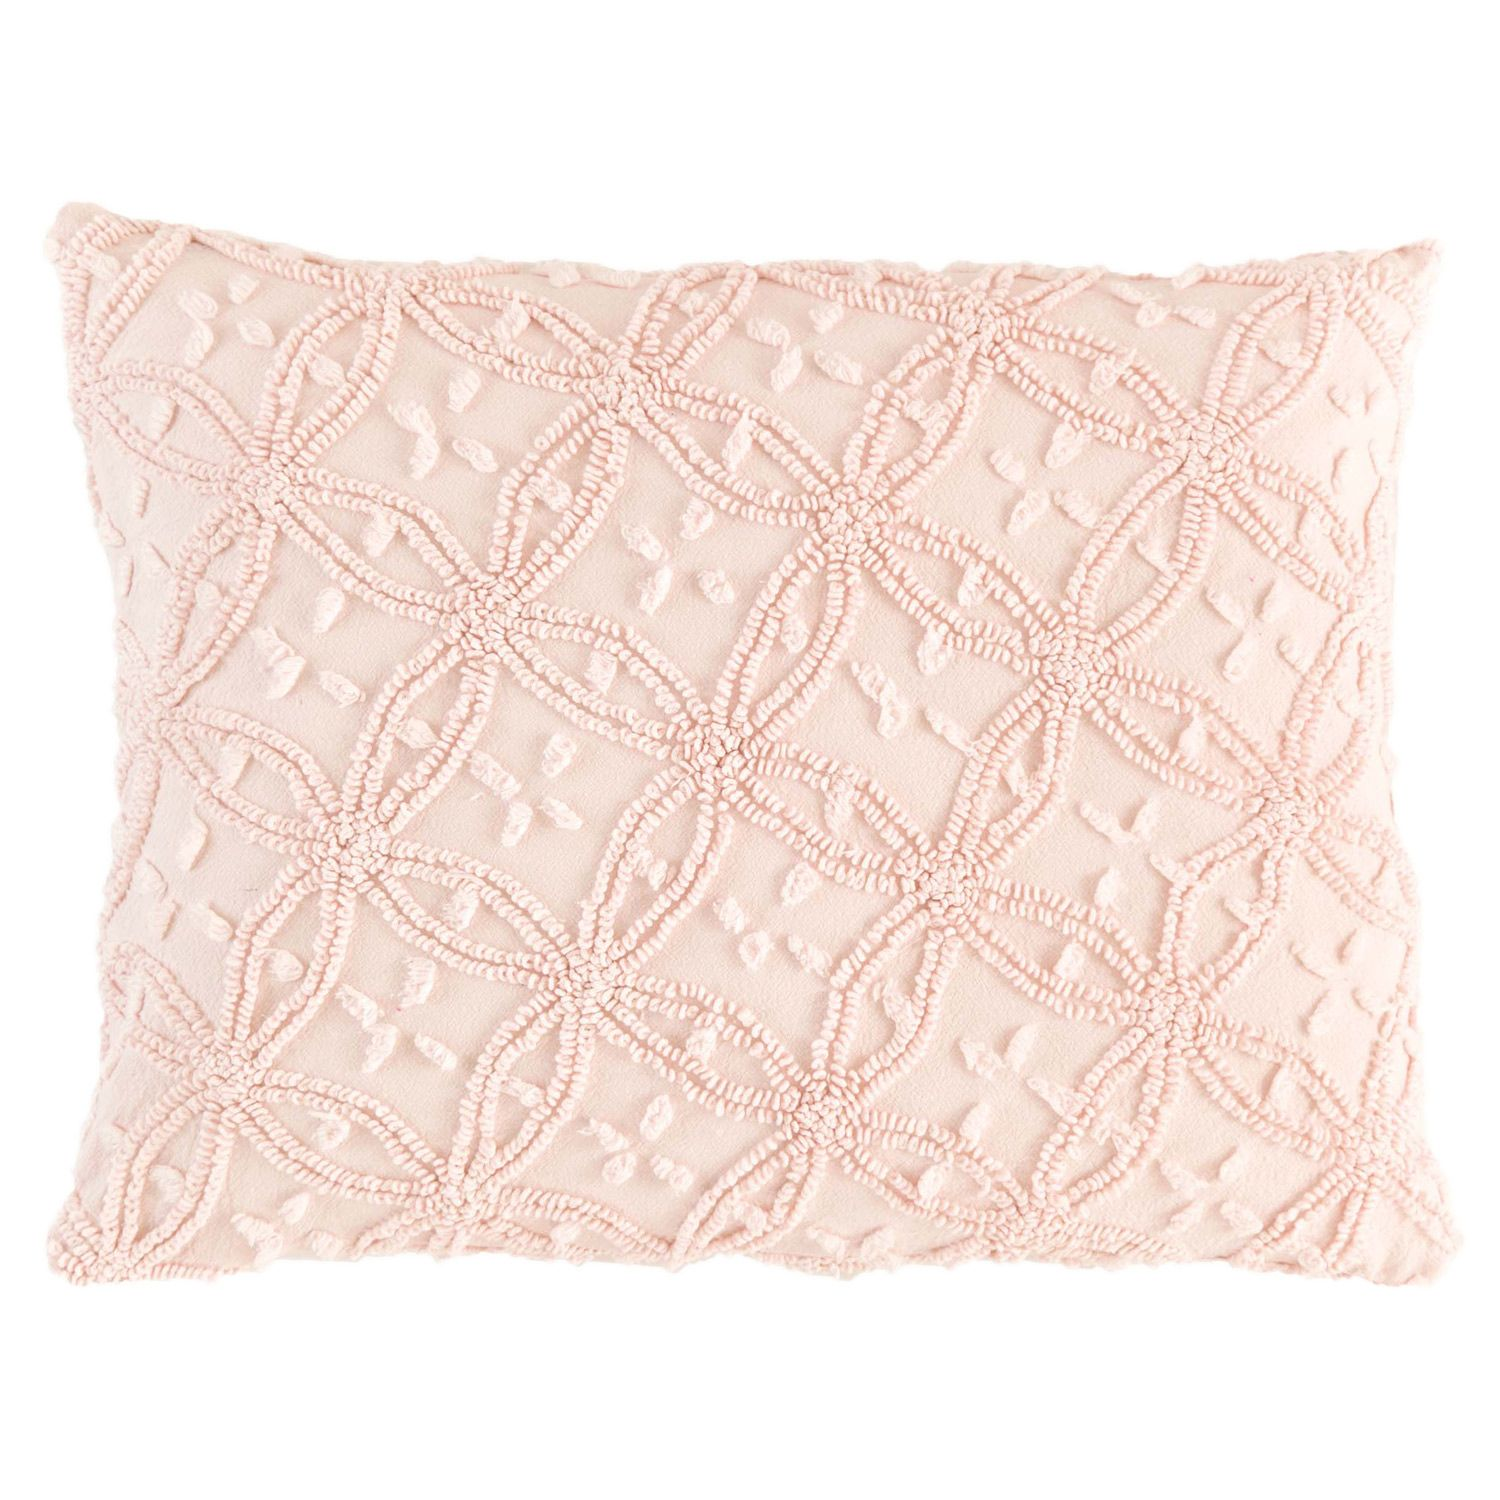 cushion pink catalog pillow pillows ikea throw en cover us products gurli pale